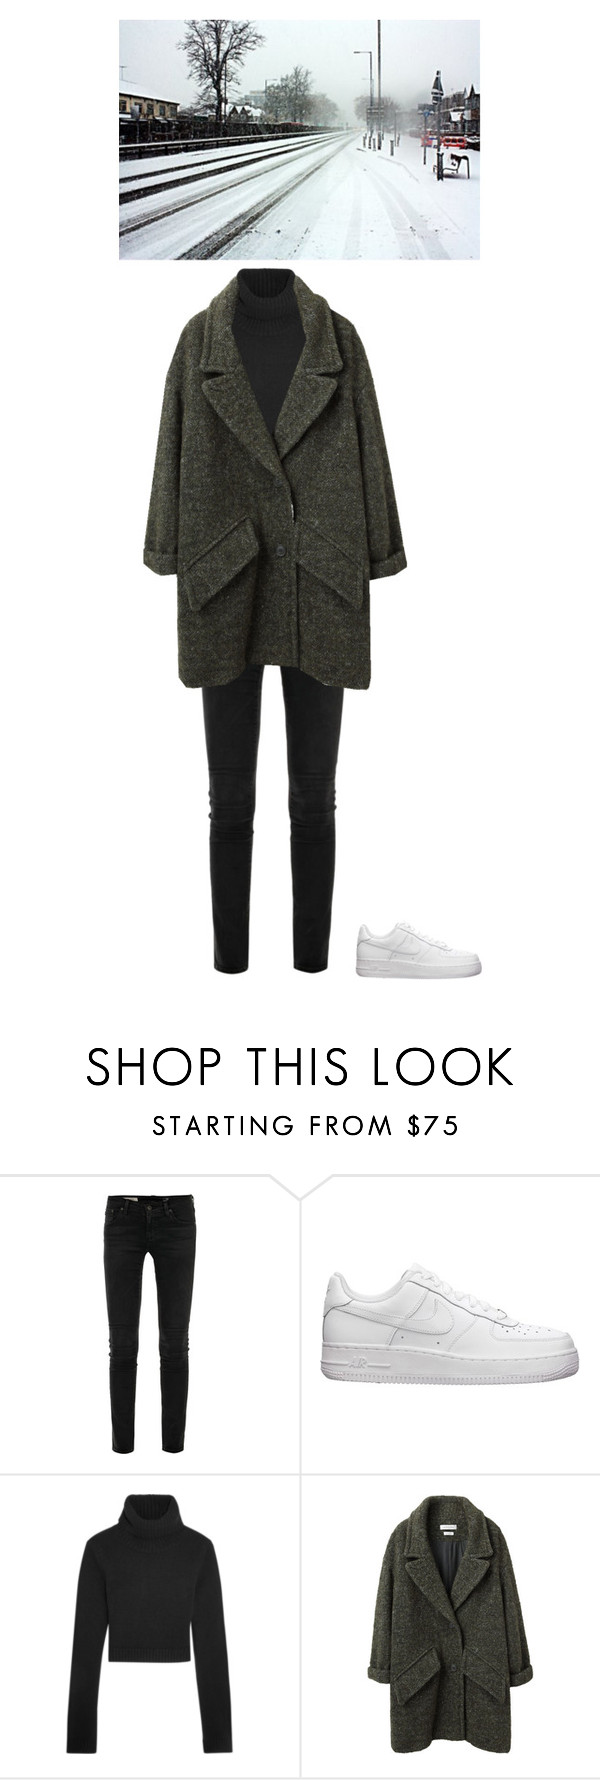 """""""Winter Vibess"""" by brittany0045 on Polyvore featuring AG Adriano Goldschmied, NIKE, Michael Kors and Étoile Isabel Marant"""